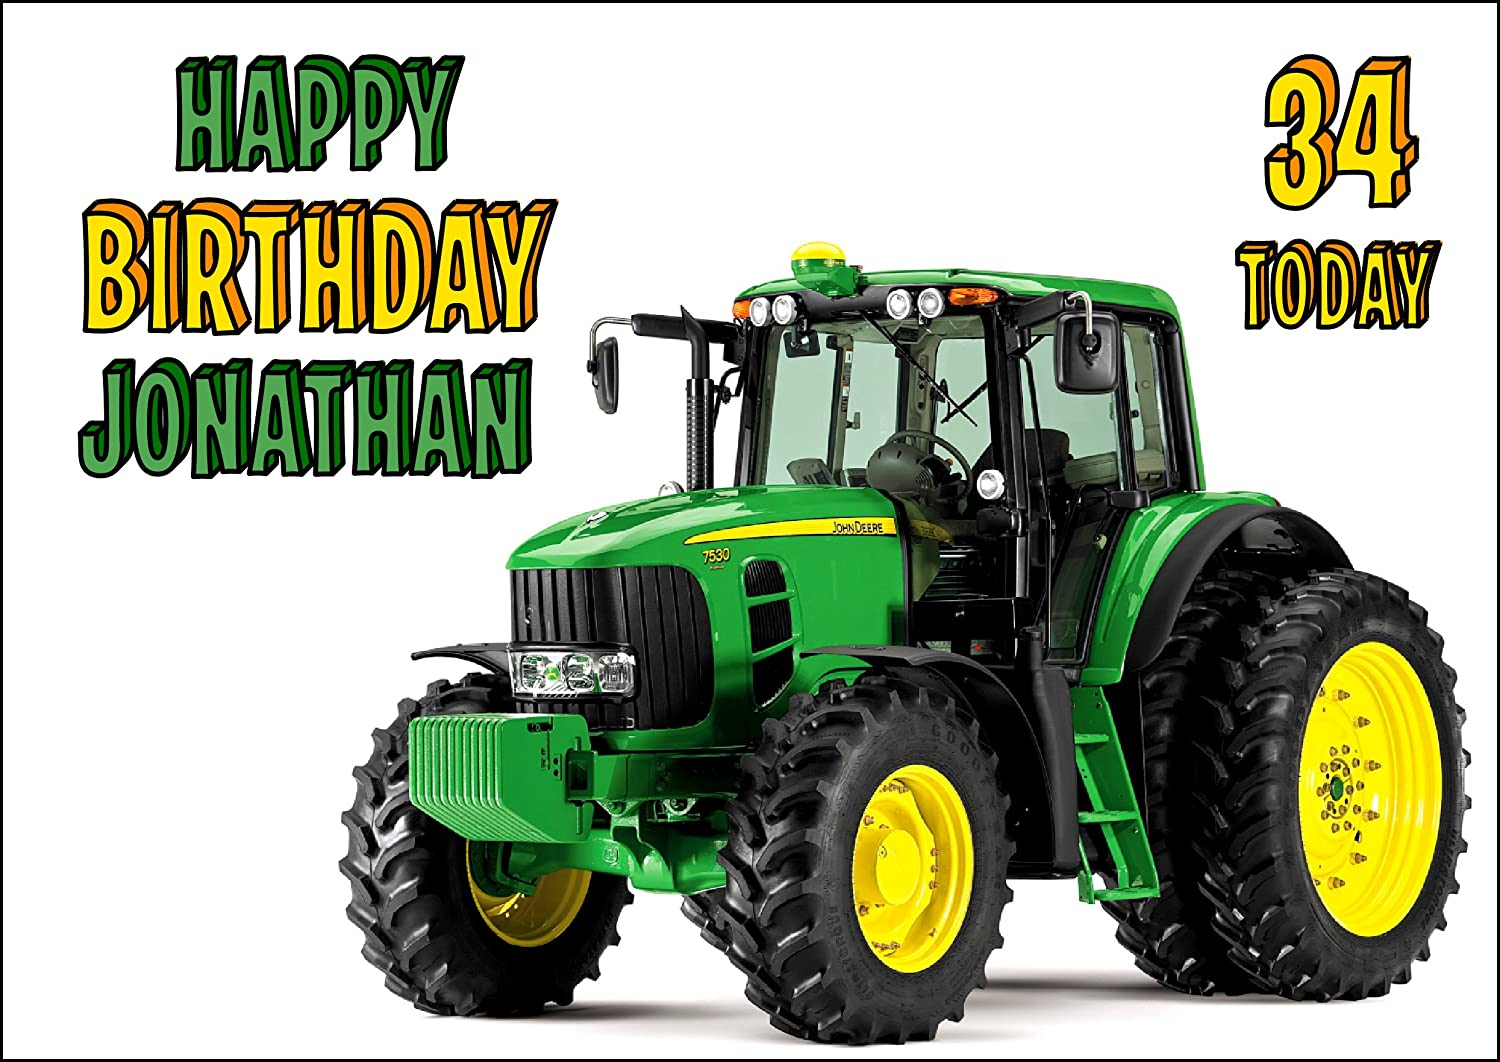 John Deere Tractor Birthday Card Customized with Your Name and Age ...